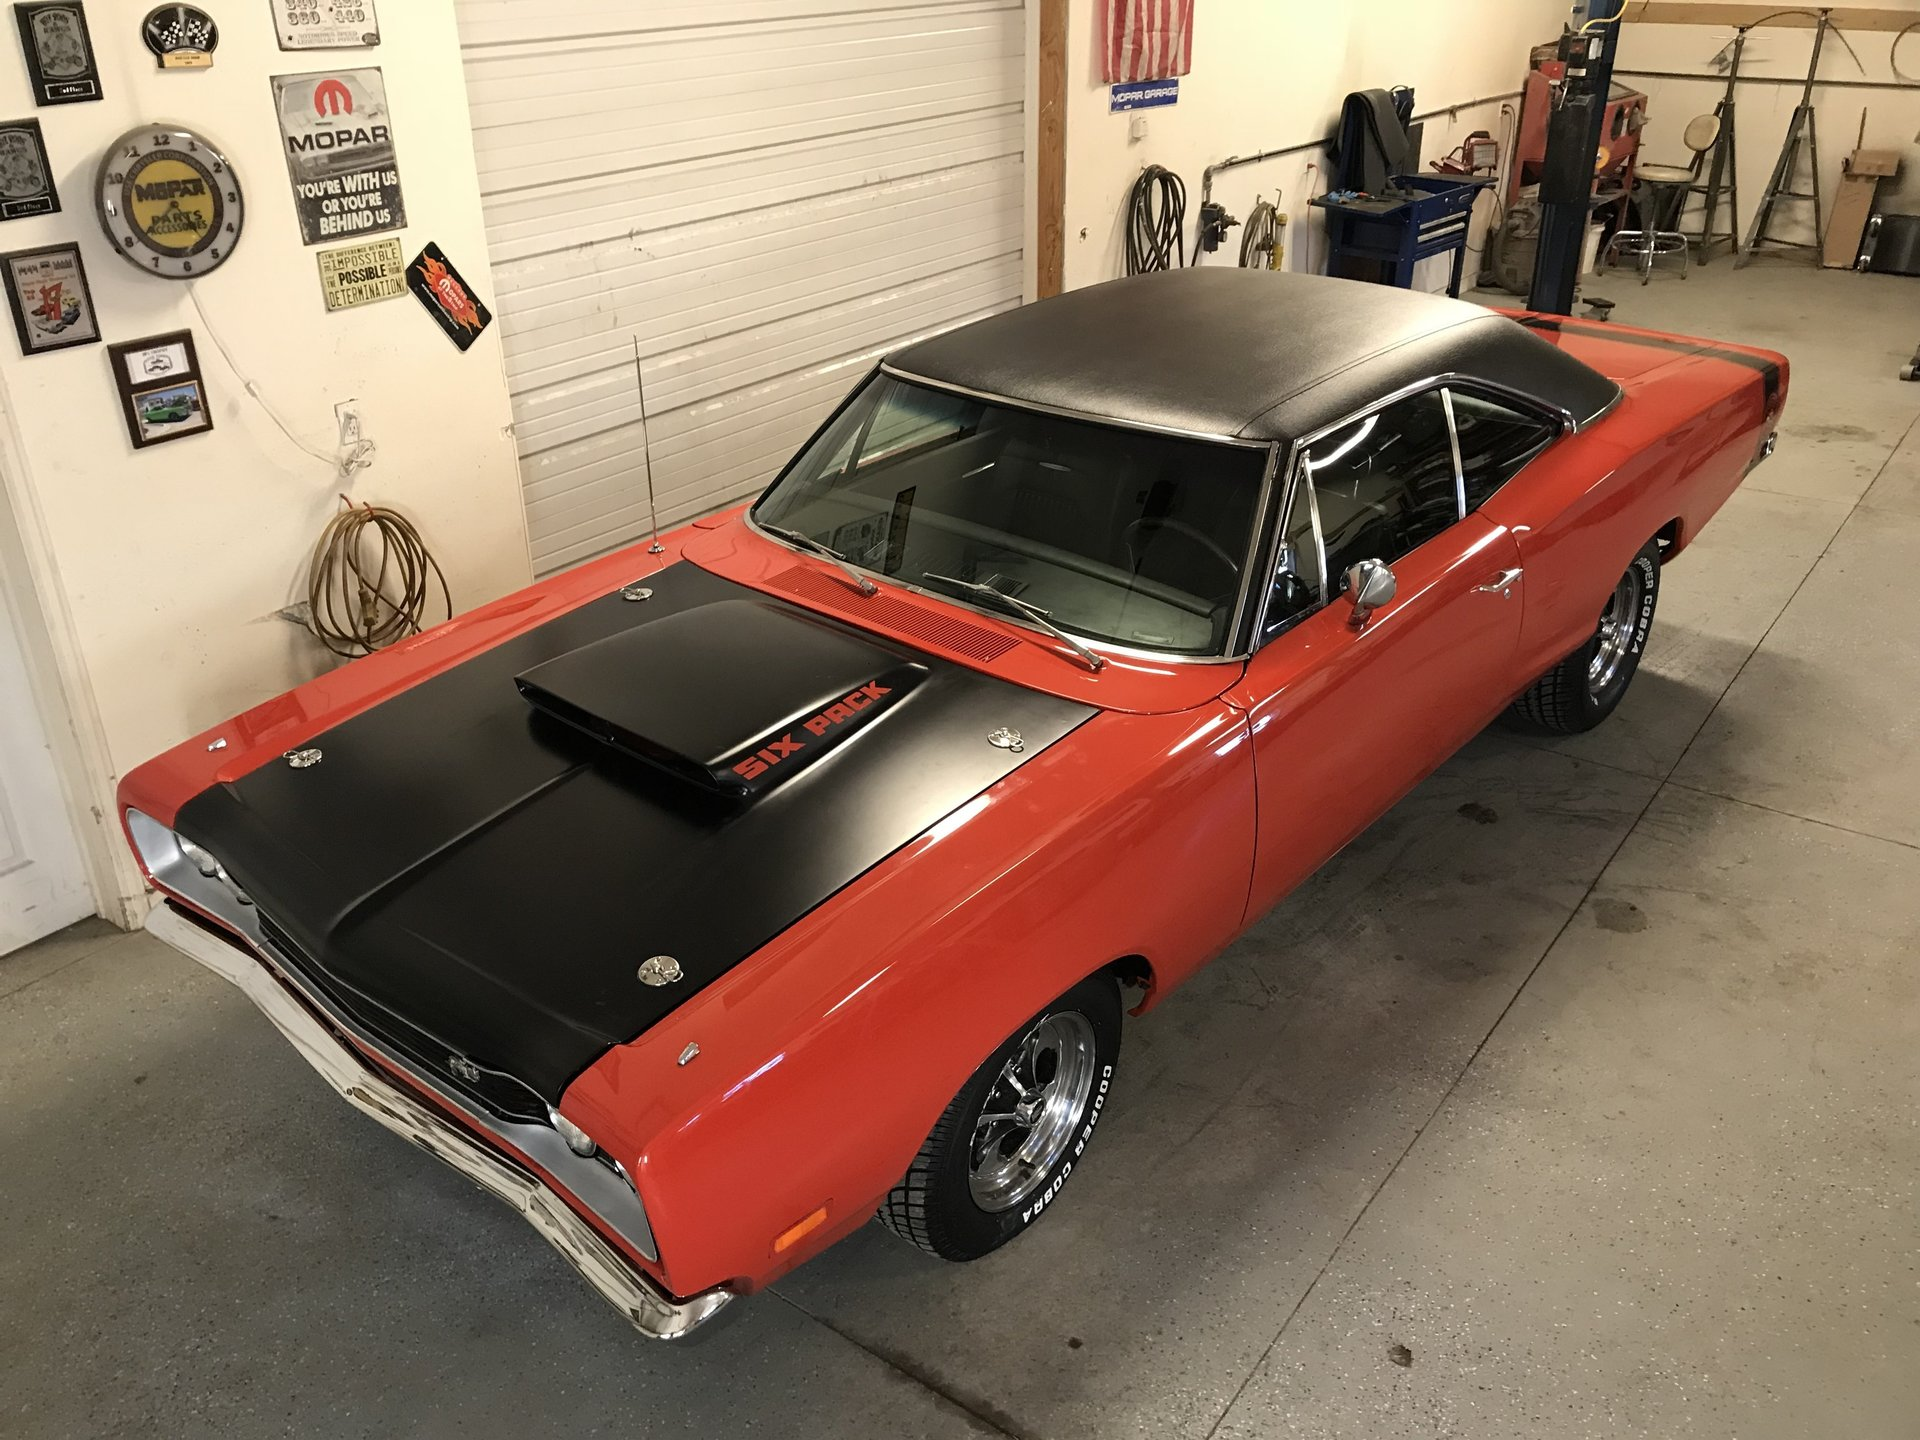 1969 Dodge Super Bee Premier Auction Coronet A12 From The Harlan Hodge Collection Selling At No Reserve A True Car 1 2